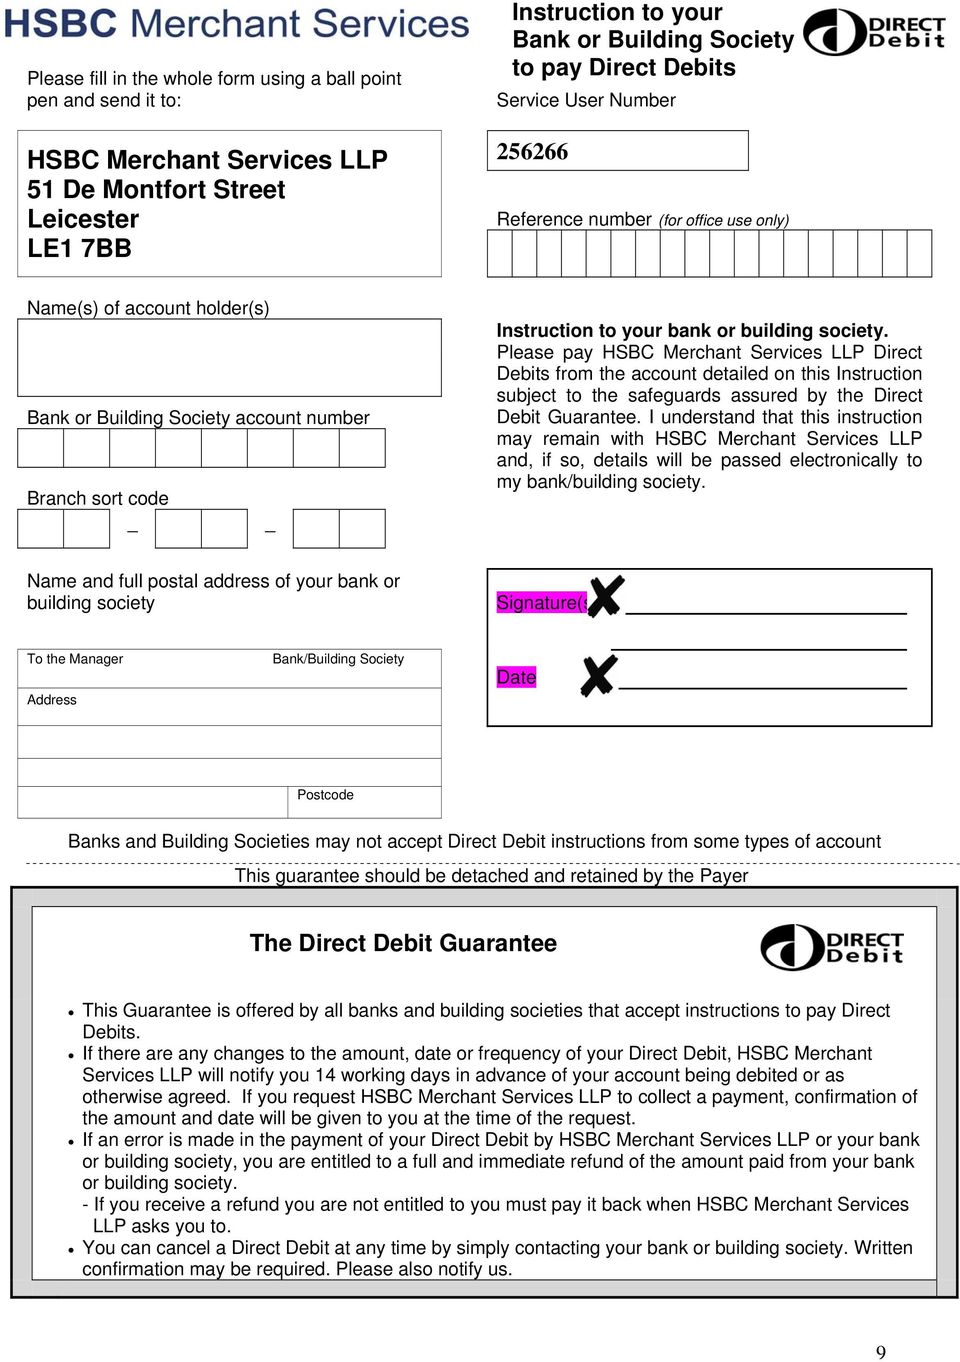 society. Please pay HSBC Merchant Services LLP Direct Debits from the account detailed on this Instruction subject to the safeguards assured by the Direct Debit Guarantee.